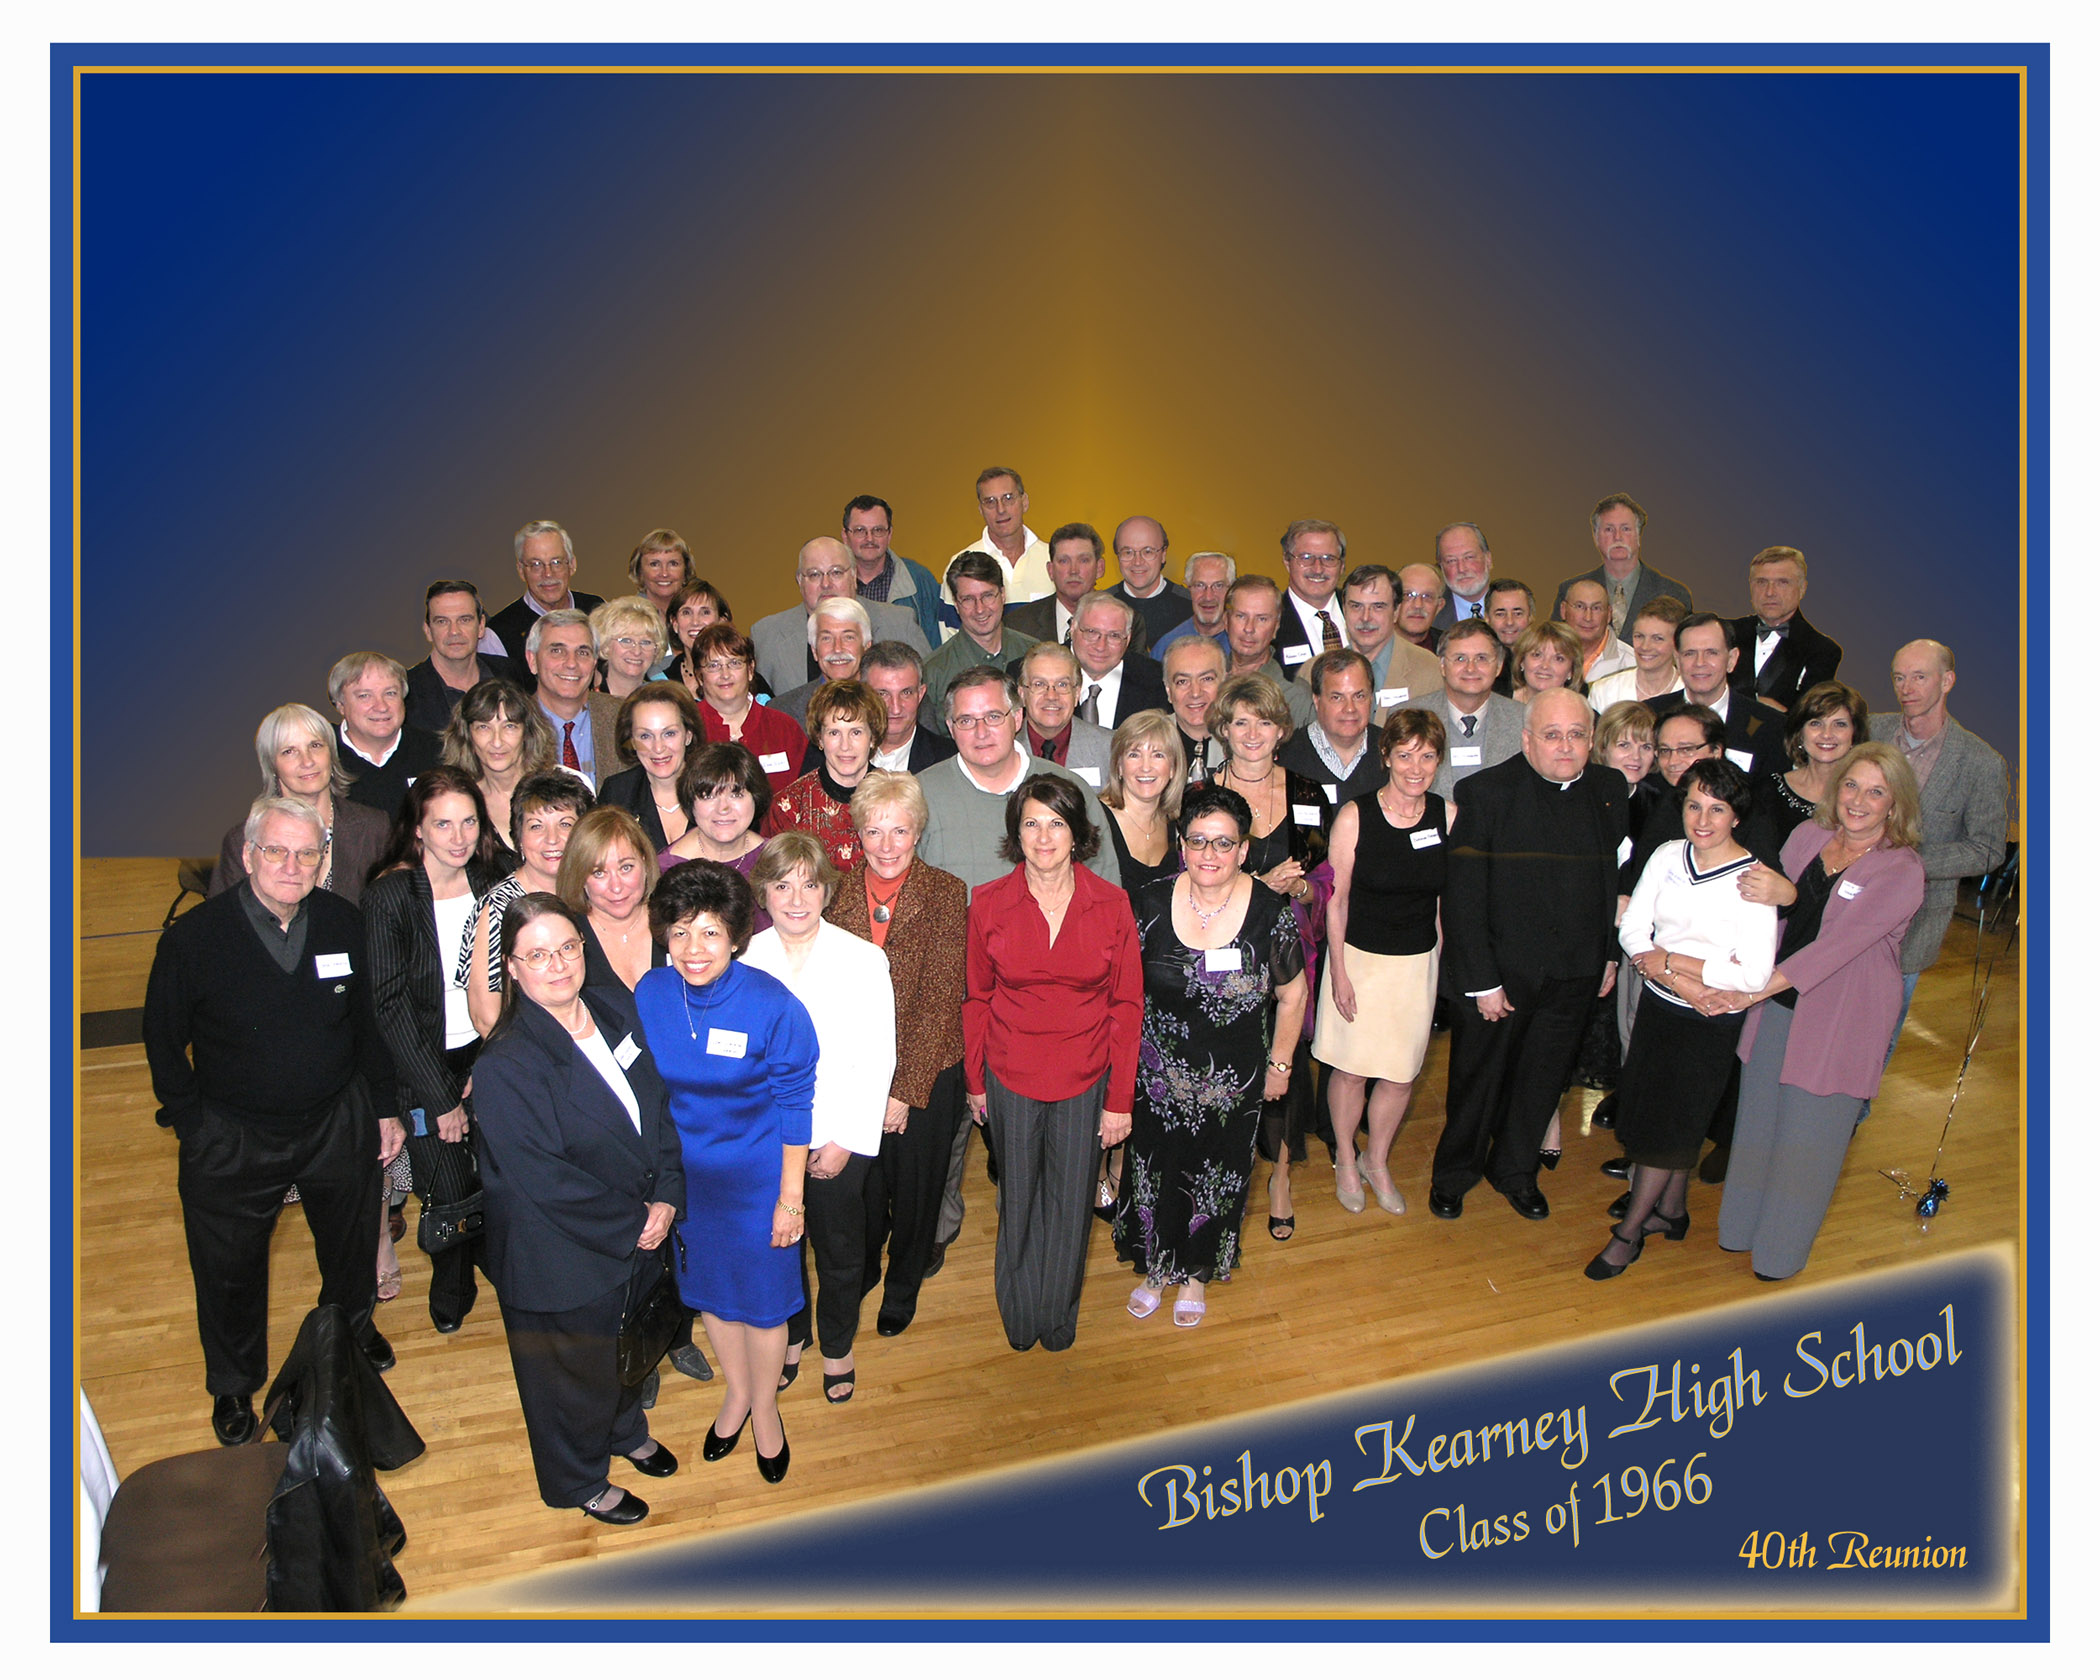 Bishop Kearney Class of 1966, 40th Reunion